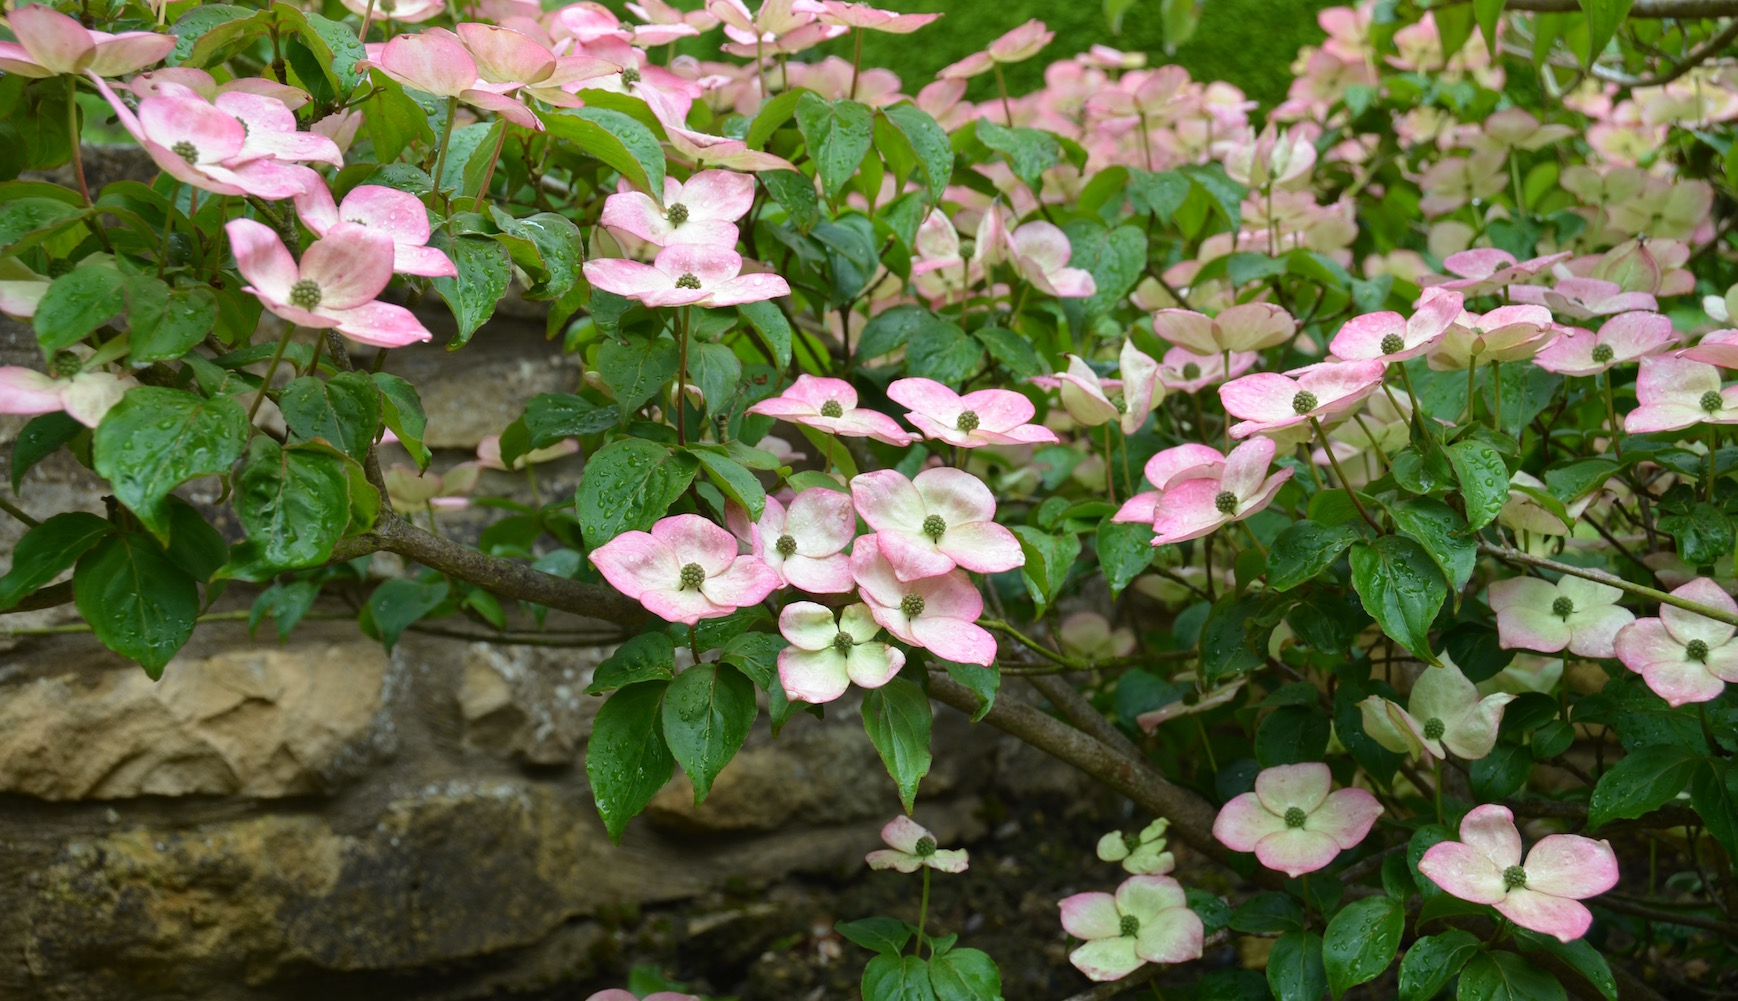 Dogwood at The Laksett Garden